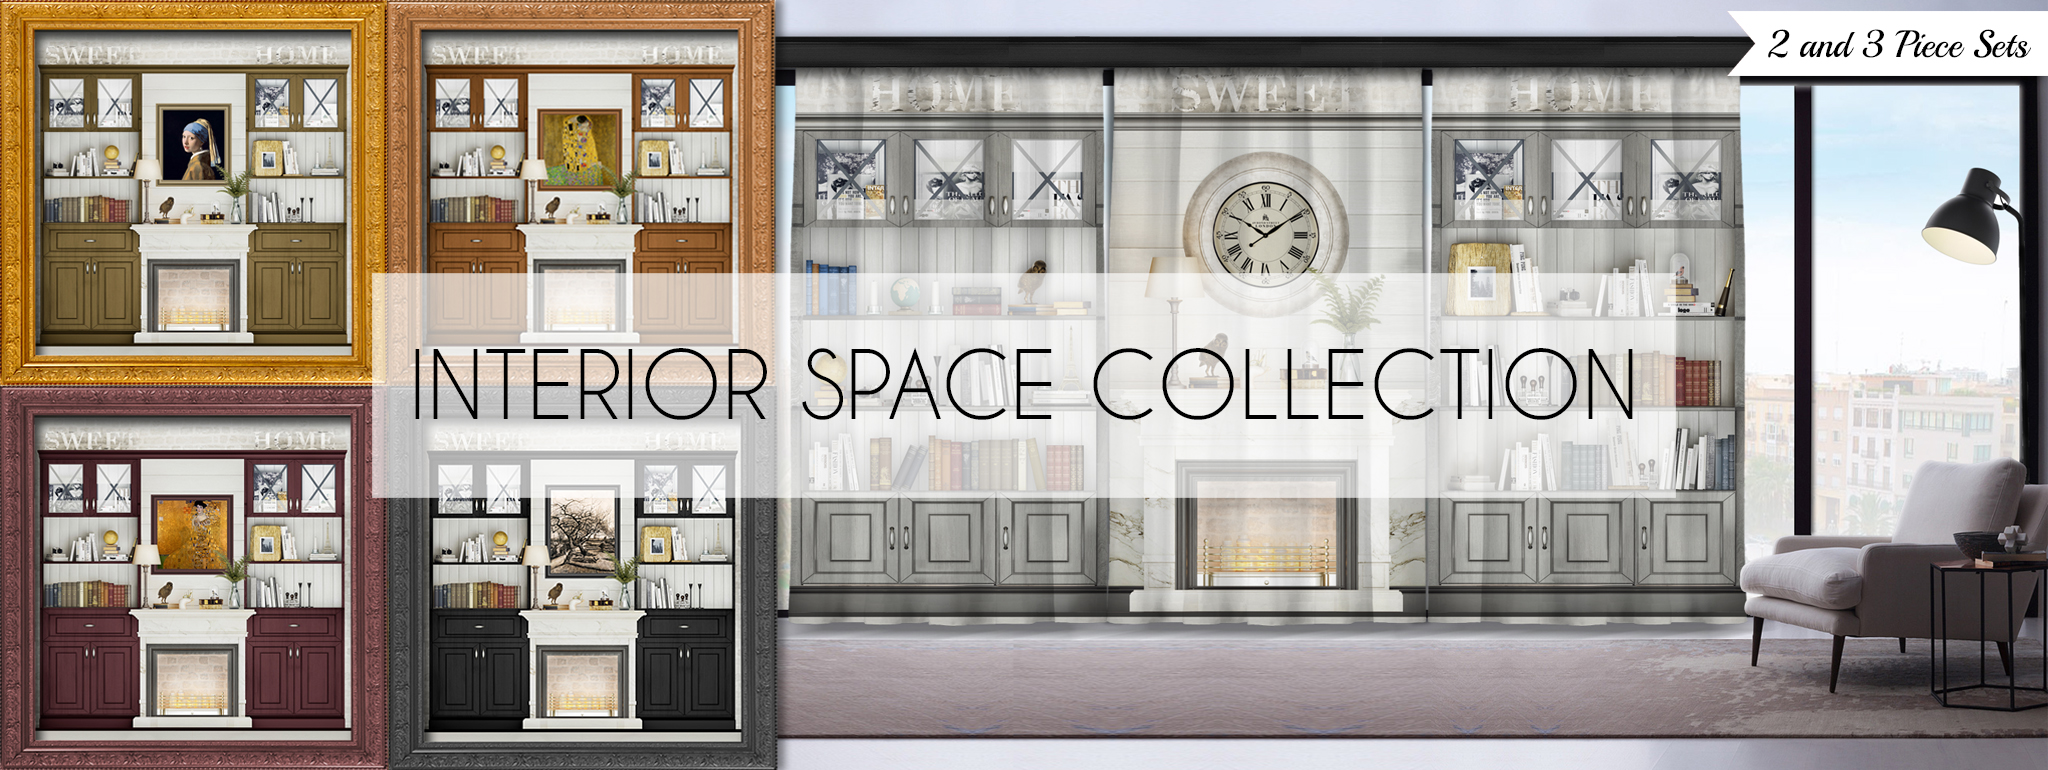 Interior Space Collection